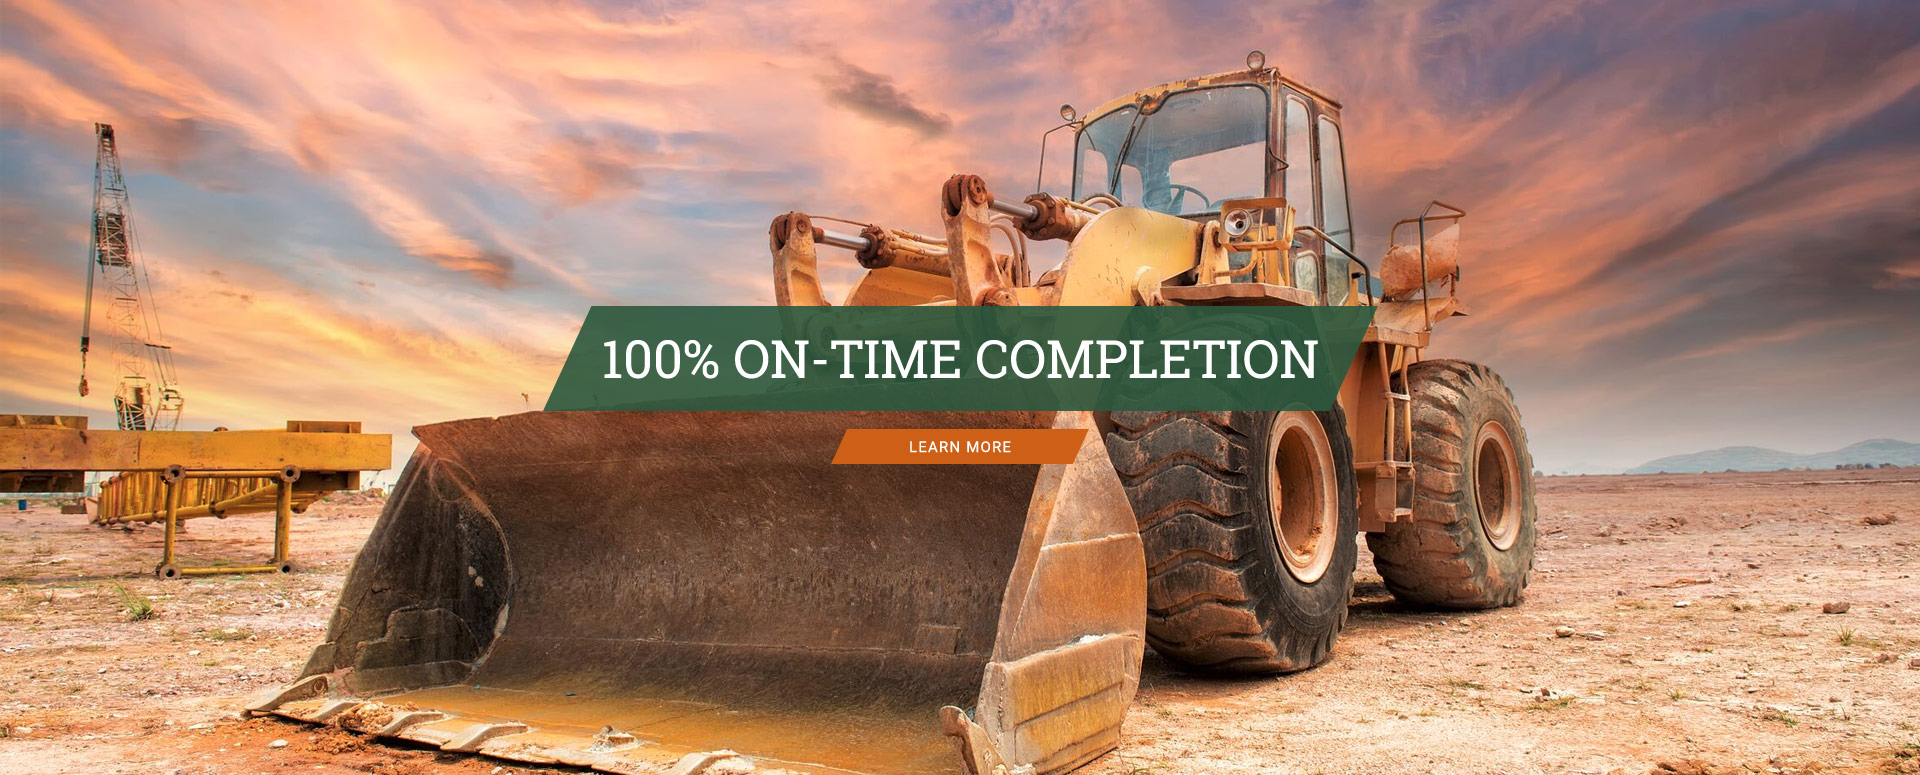 on-time completion